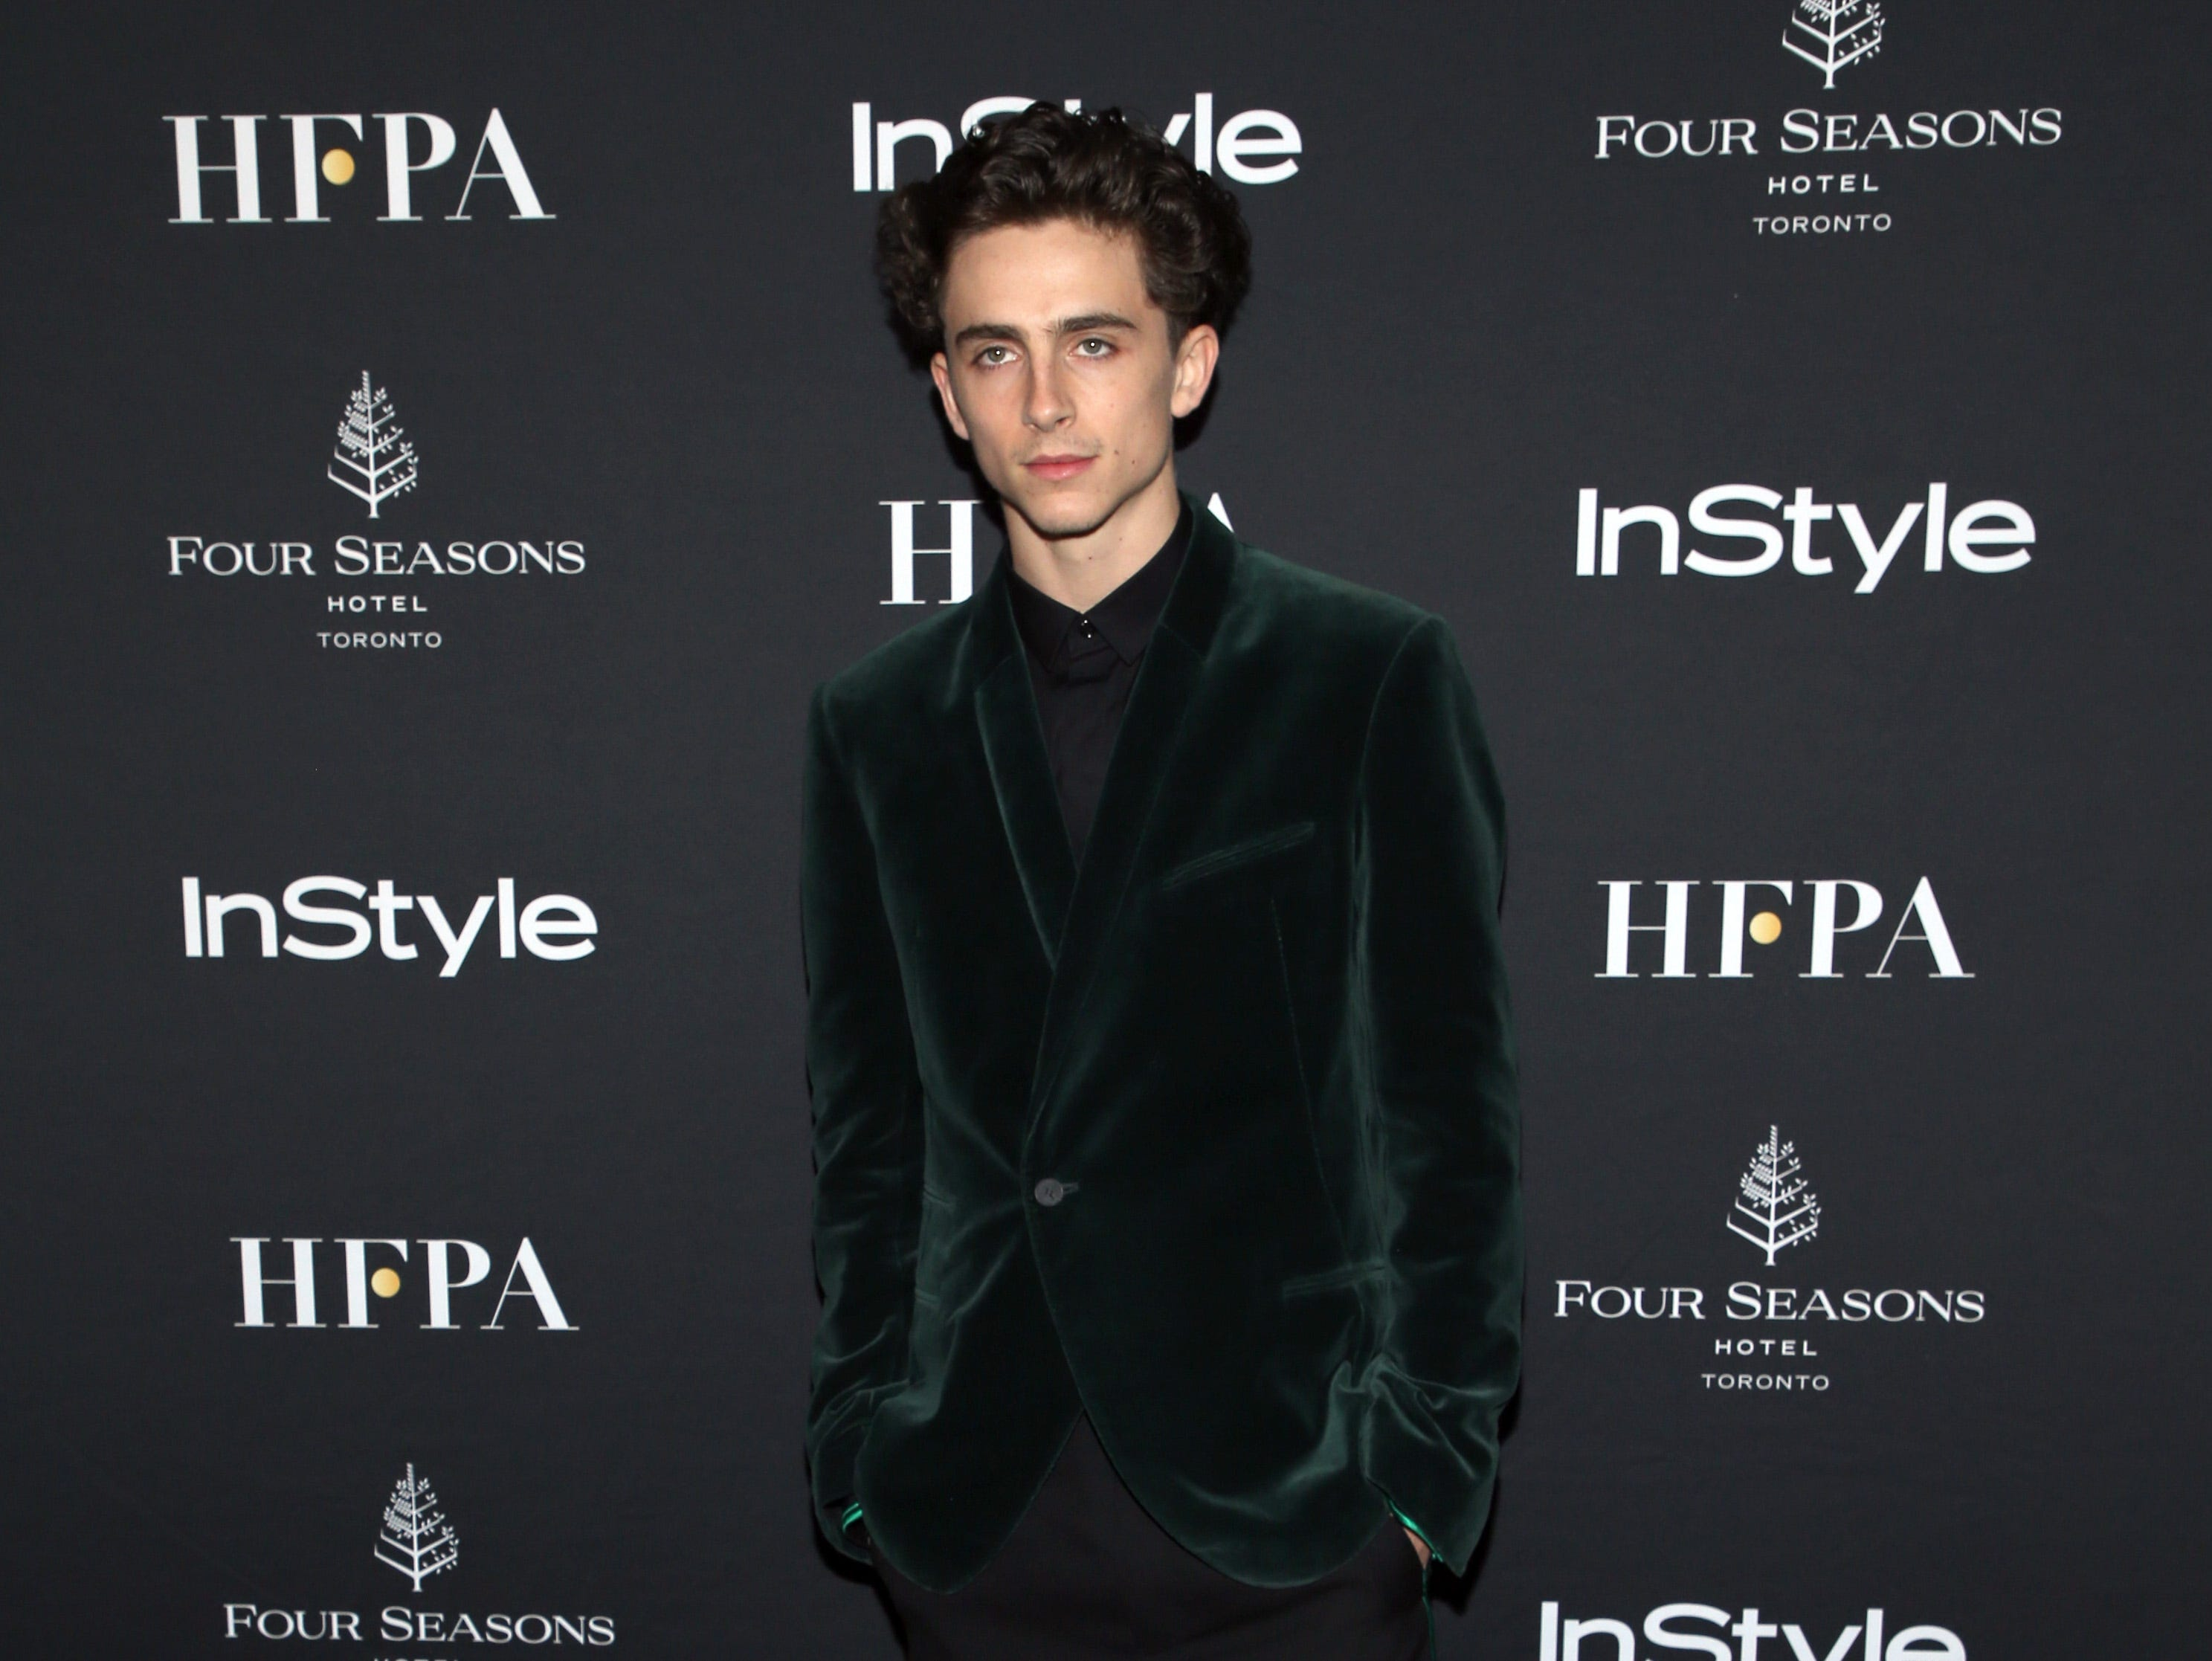 TORONTO, ON - SEPTEMBER 08:  Timothee Chalamet   attends The Hollywood Foreign Press Association and InStyle Party during 2018 Toronto International Film Festival at Four Seasons Hotel on September 8, 2018 in Toronto, Canada.  (Photo by Phillip Faraone/WireImage) ORG XMIT: 775218499 ORIG FILE ID: 1029631758